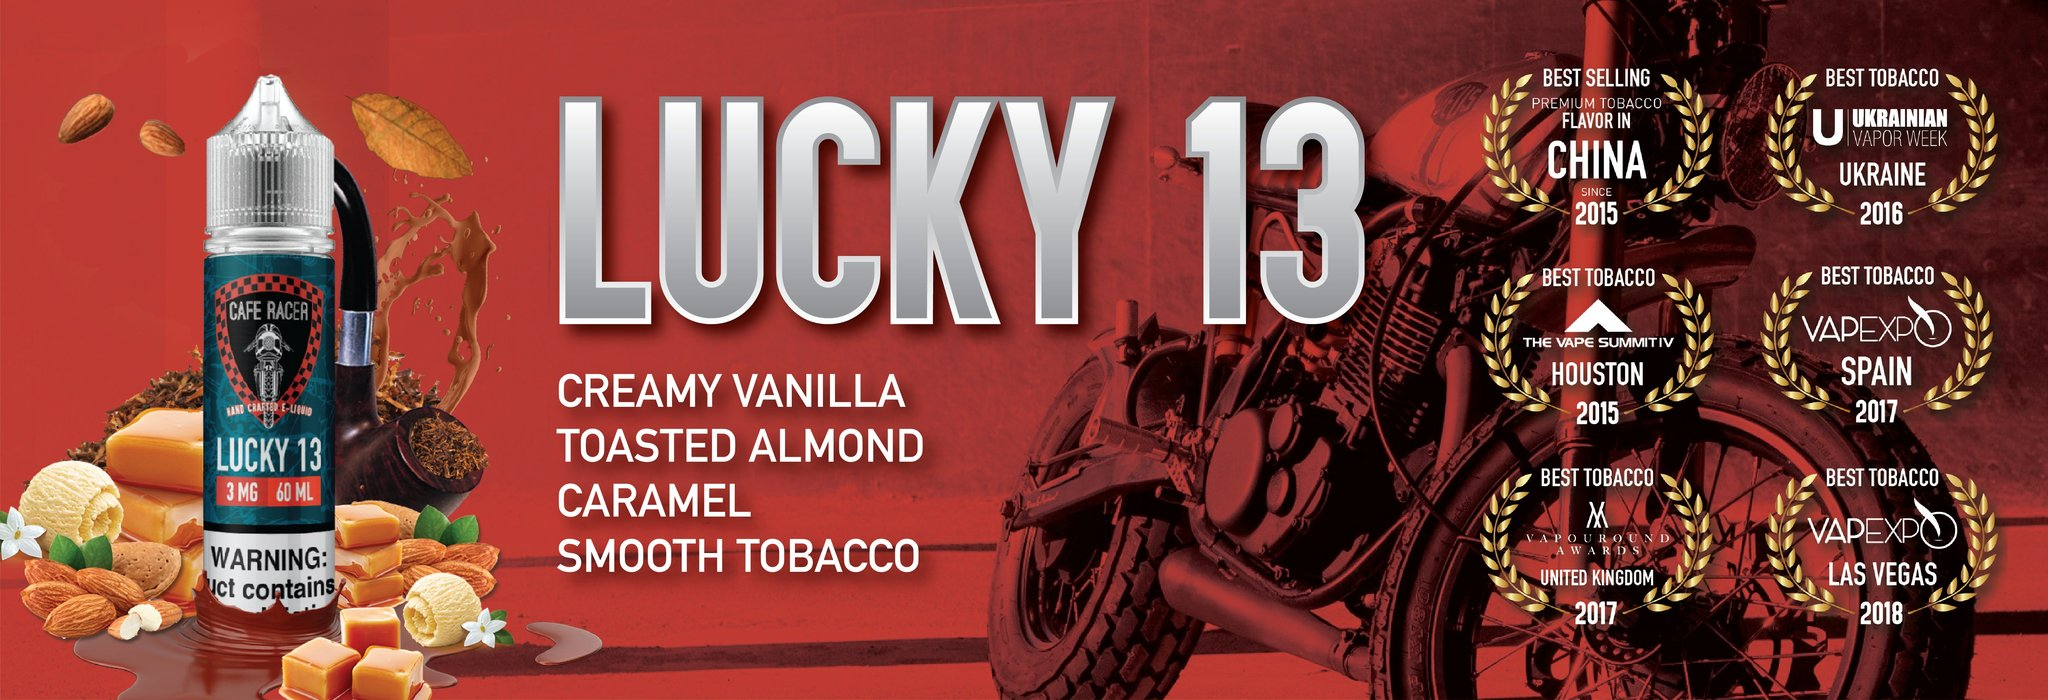 Lucky 13 by Cafe Racer Vape | High Quality and Best Value E-juice